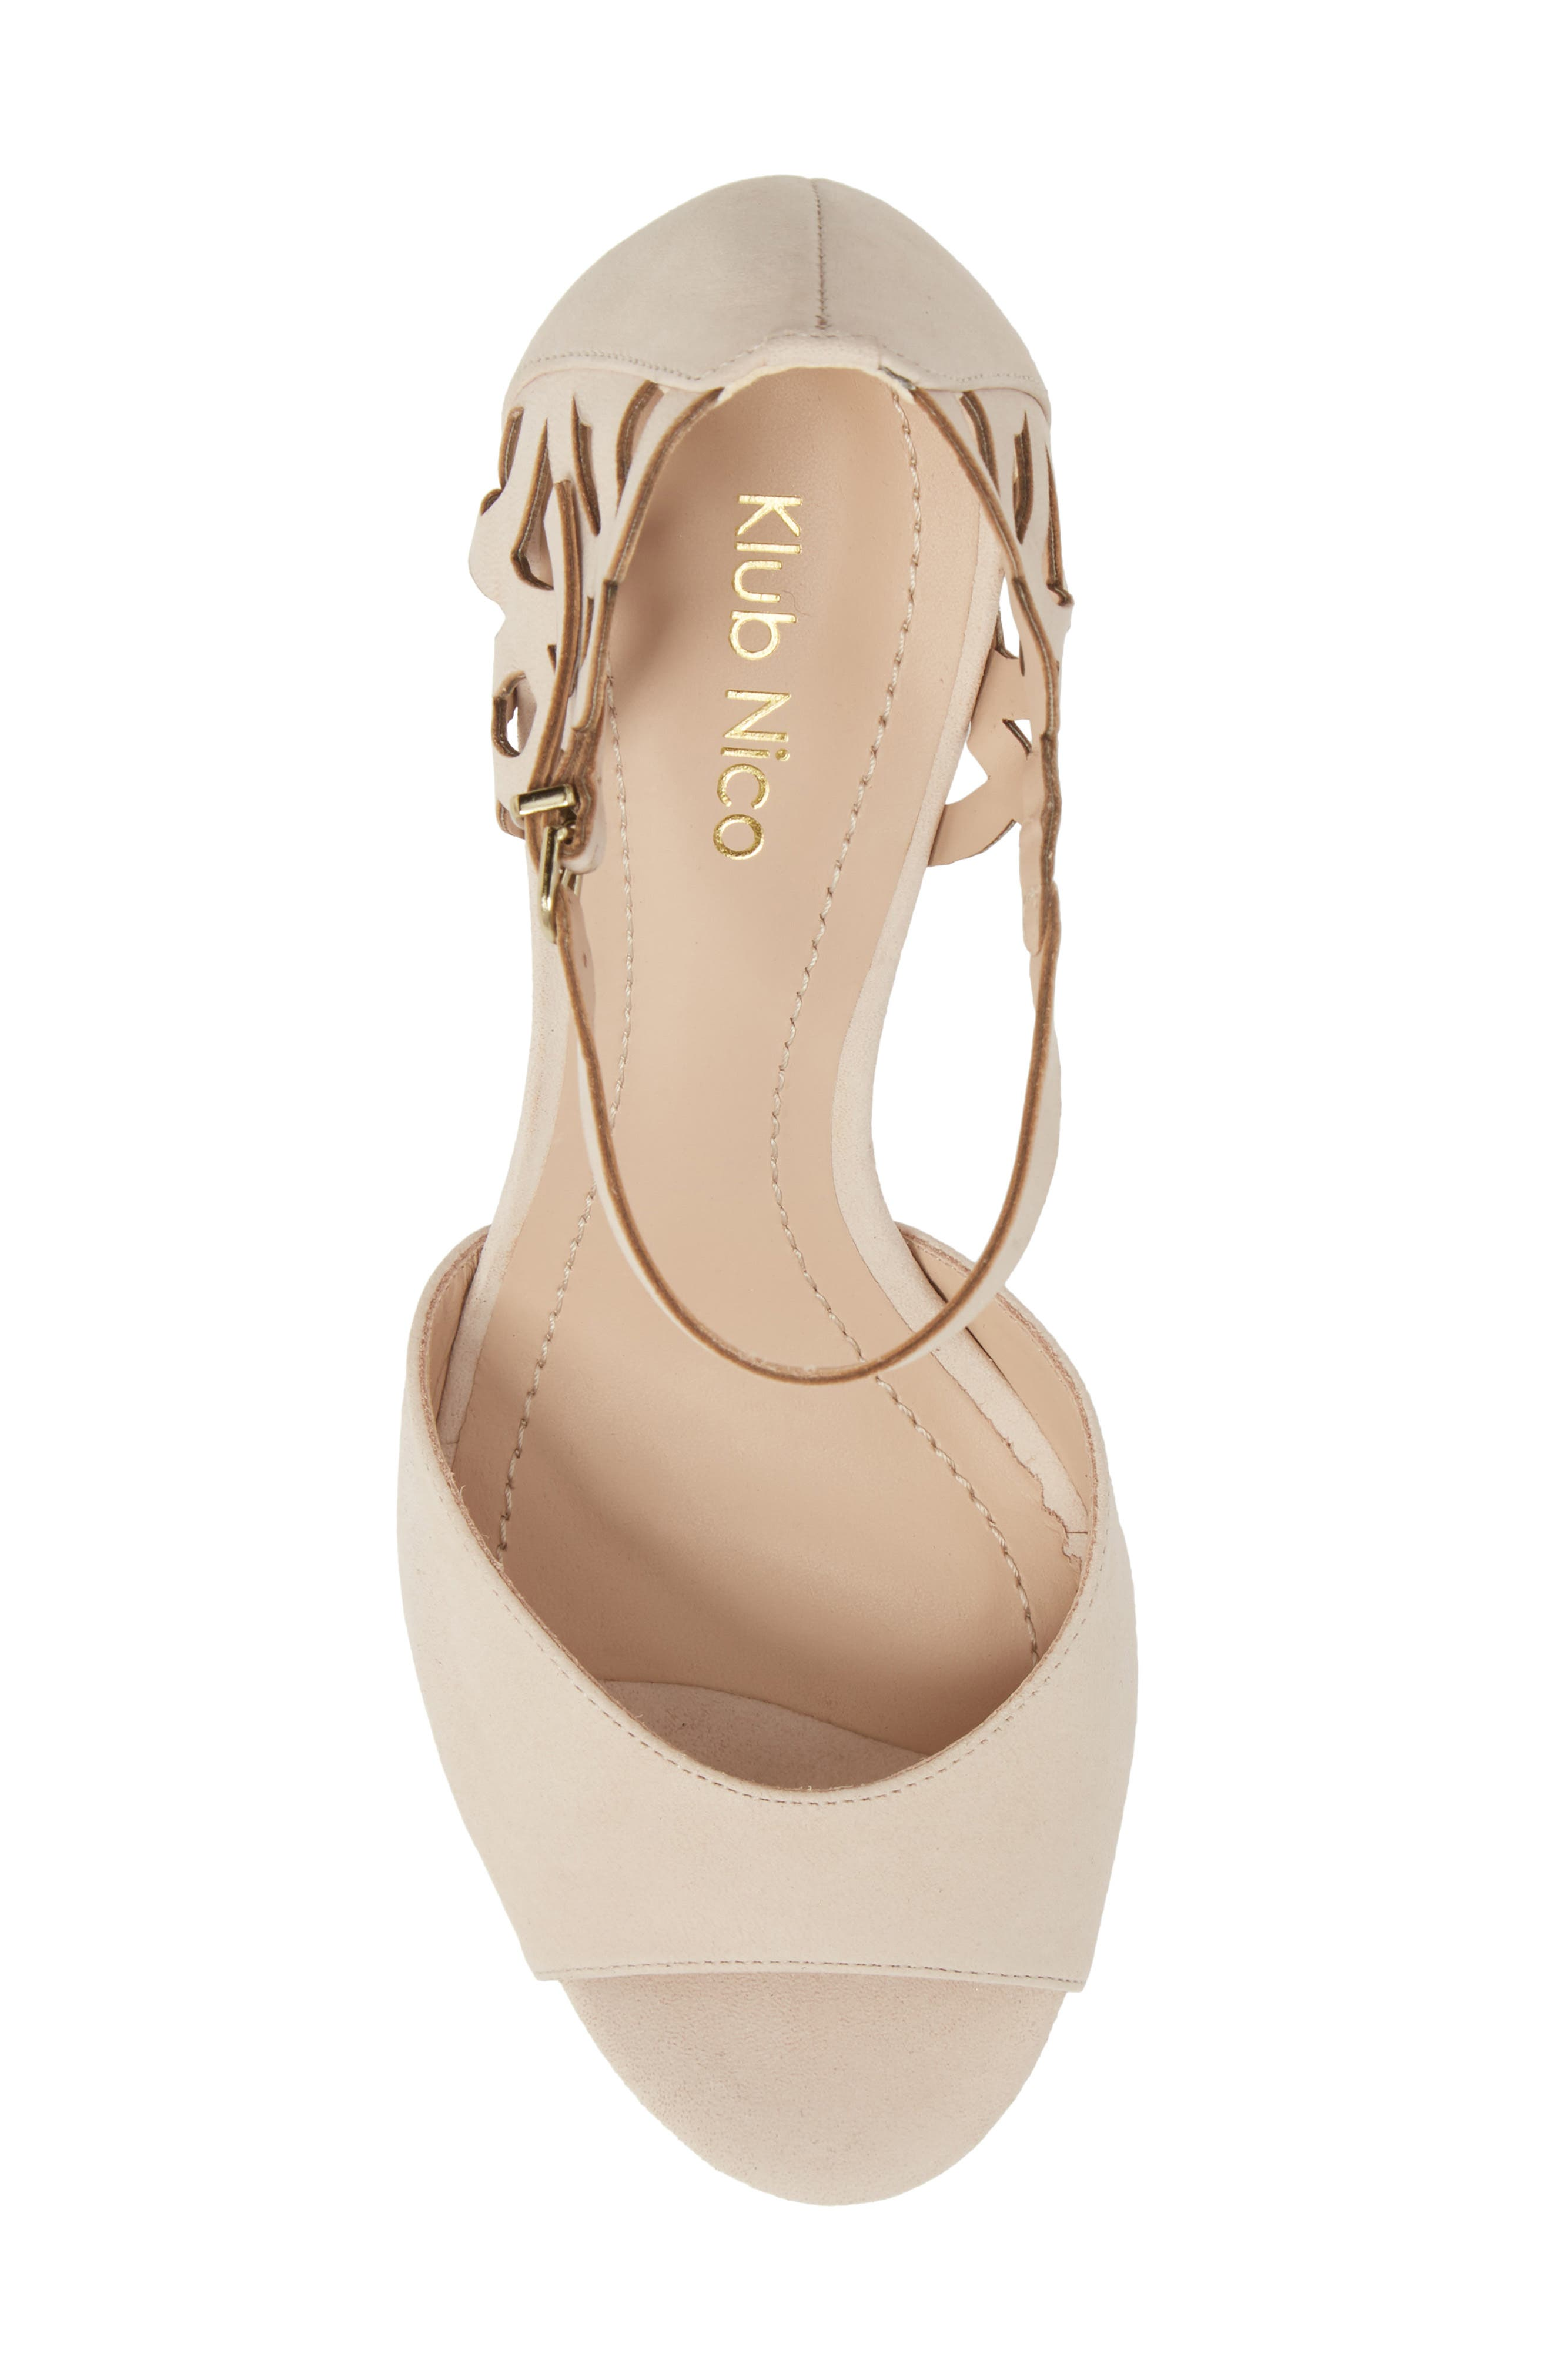 Adalie Sandal,                             Alternate thumbnail 5, color,                             Nude Leather